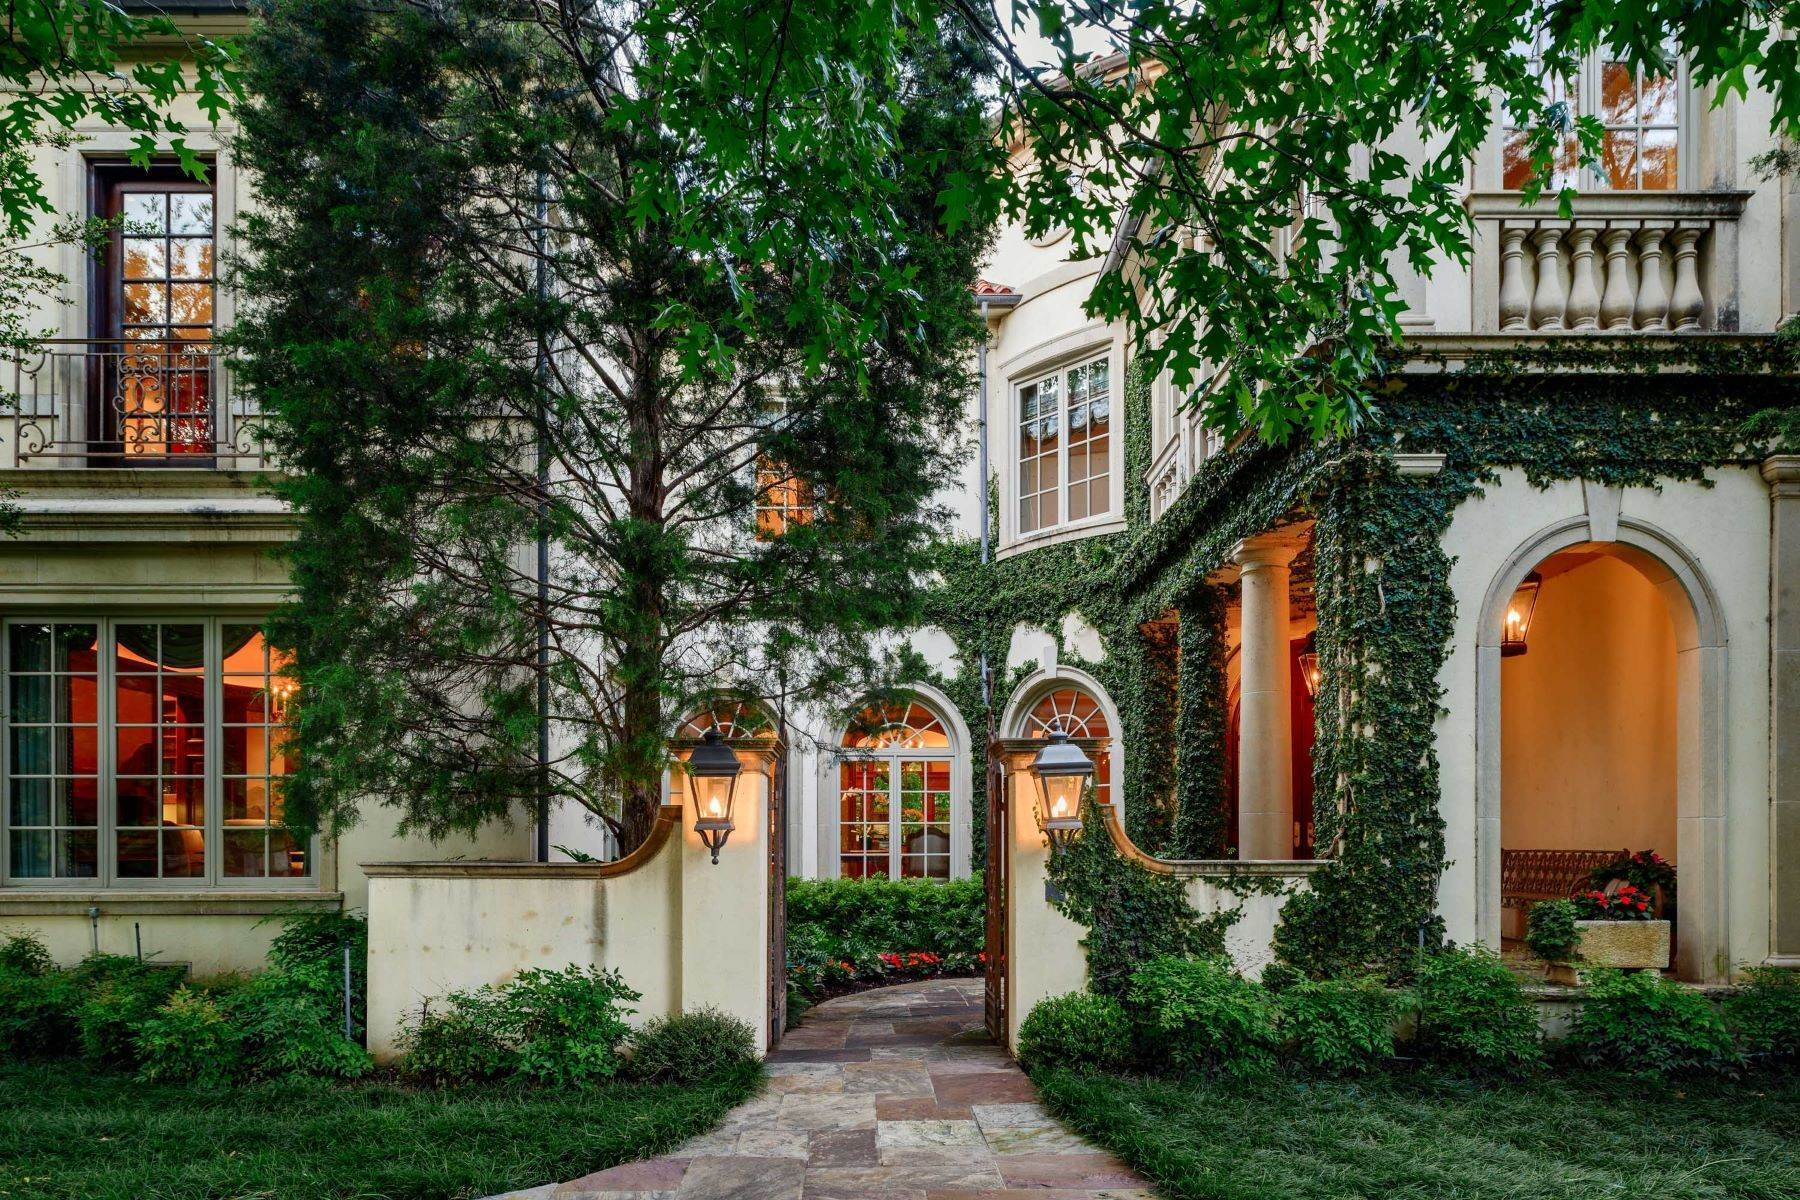 Single Family Homes for Sale at Iconic Italian Renaissance Villa in Highland Park 4300 Armstrong Parkway Highland Park, Texas 75205 United States